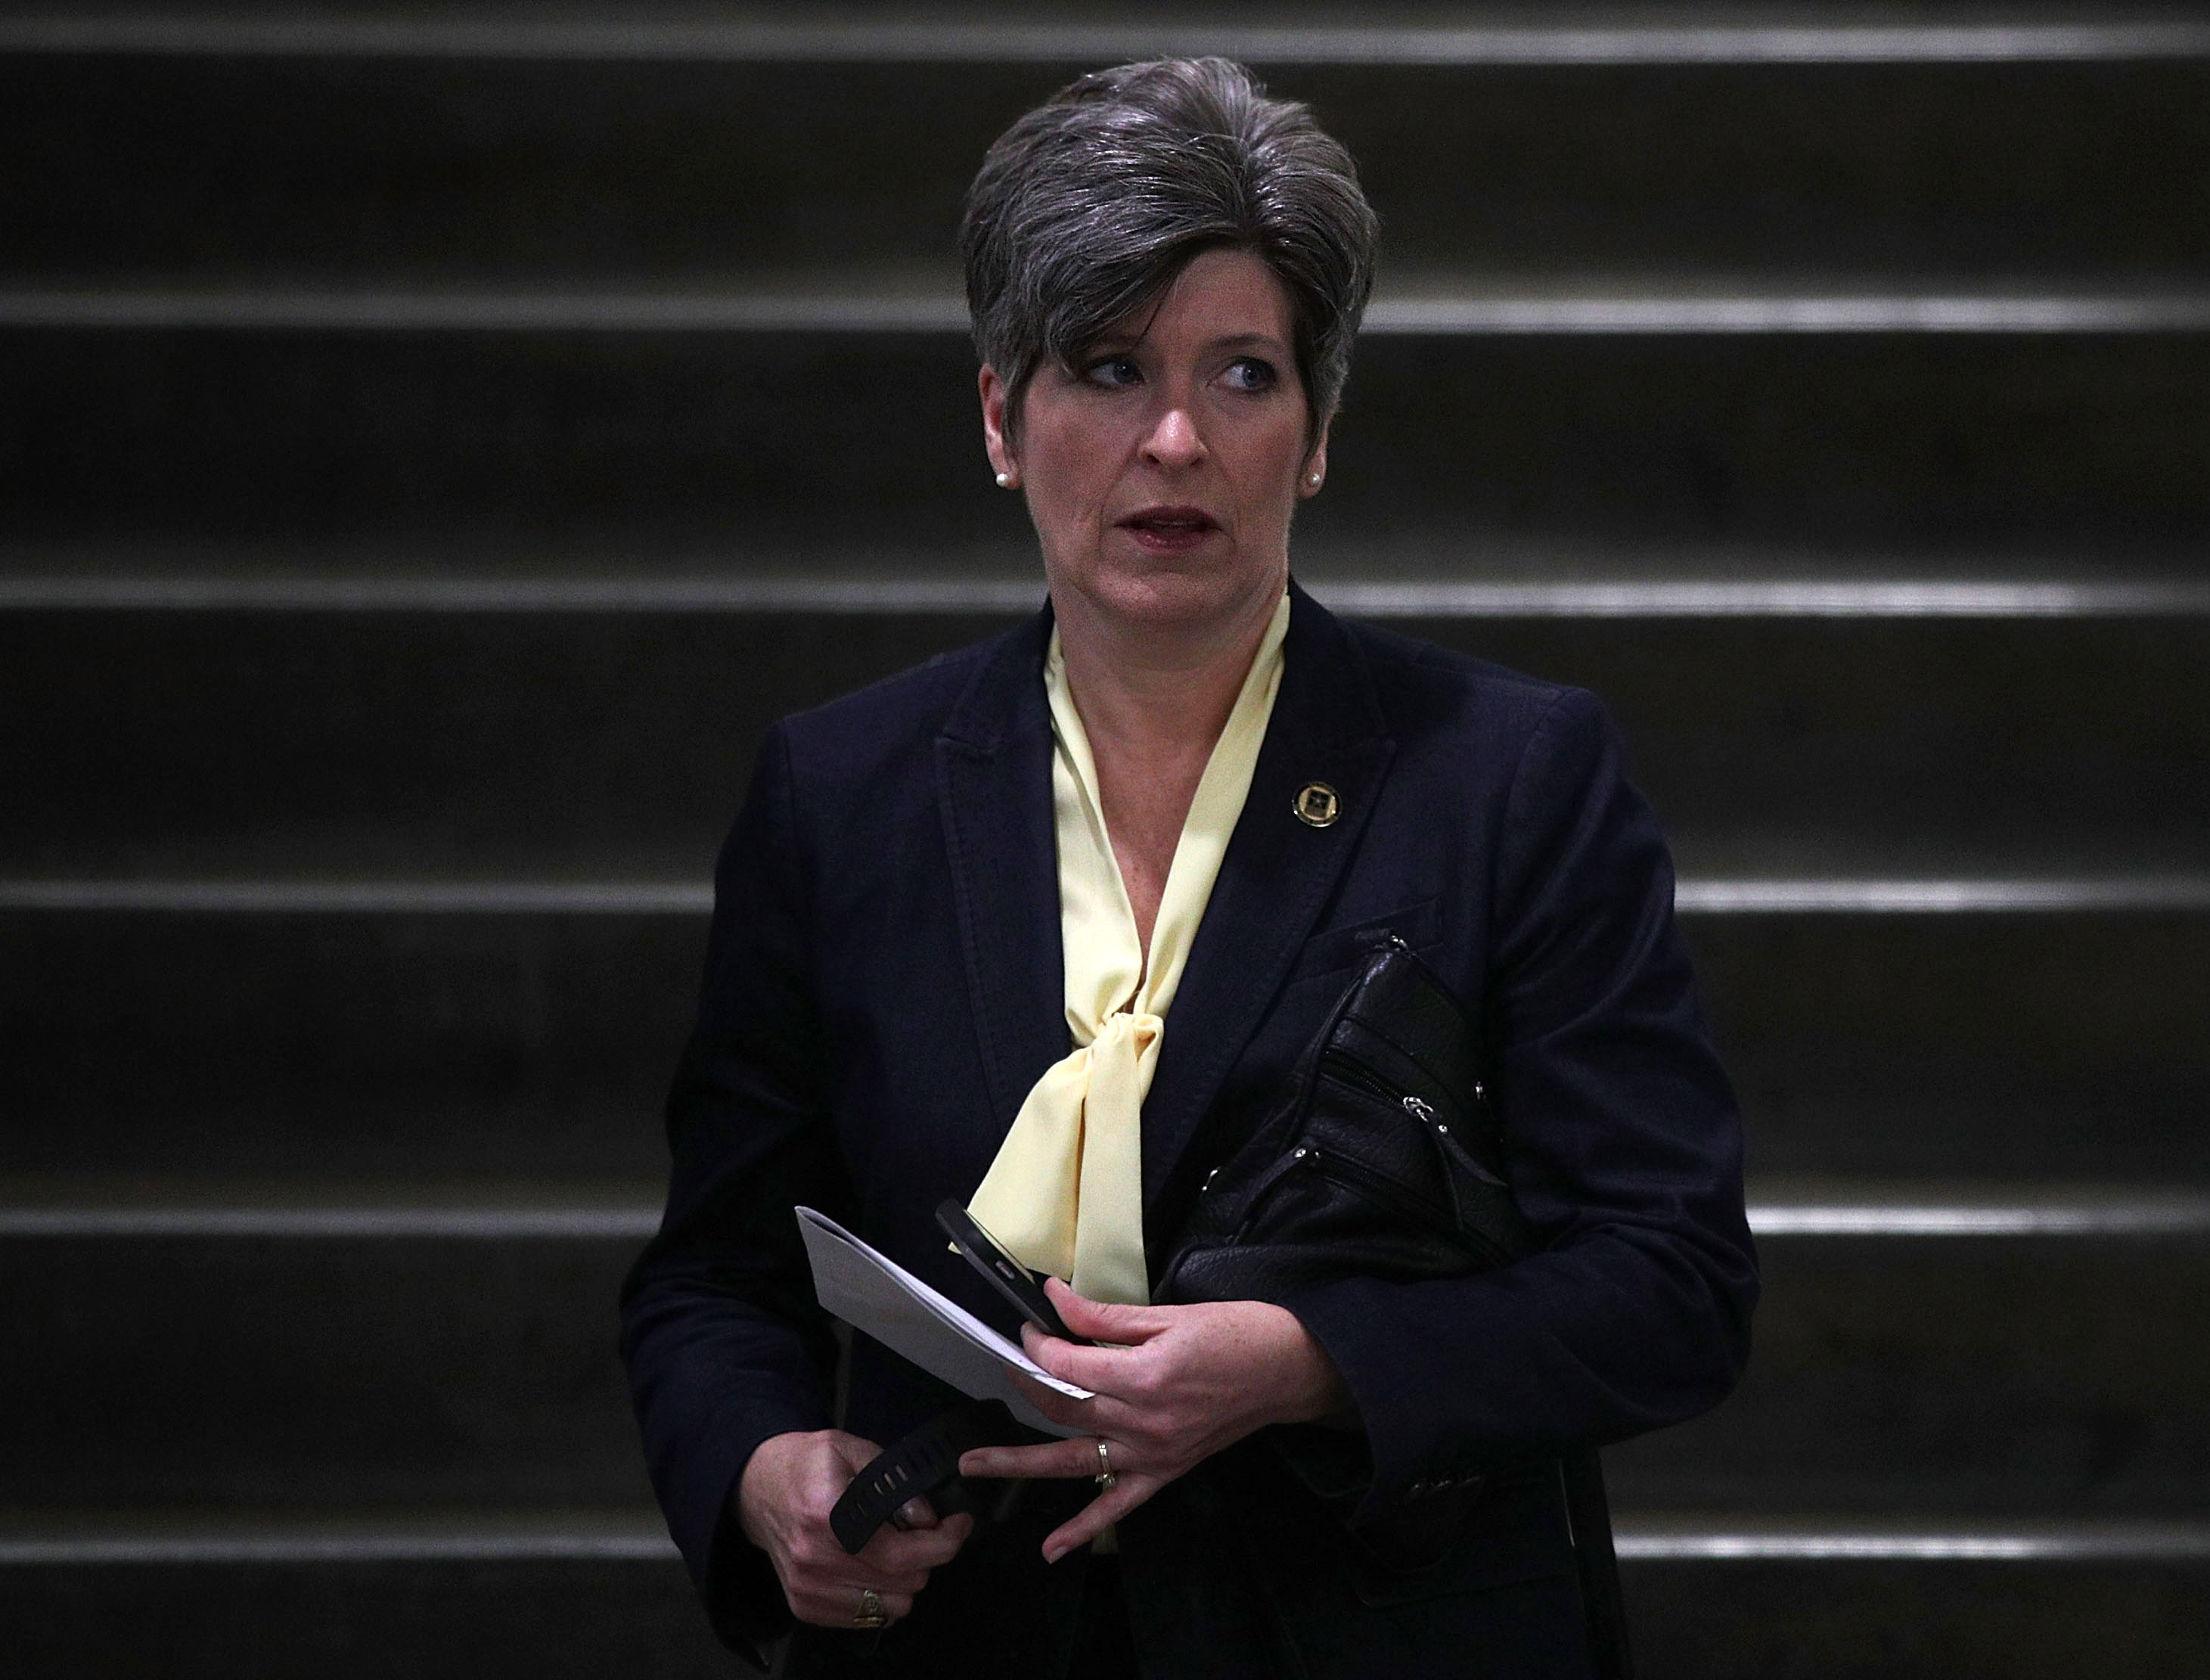 WASHINGTON, DC - APRIL 07:  U.S. Sen. Joni Ernst (R-IA) arrives for a closed briefing on the airstrikes against Syria by Chairman of the Joint Chiefs Gen. Joe Dunford April 7, 2017 at the Capitol in Washington, DC. Dozens of Tomahawk cruise missiles were launched by the U.S. targeting an airfield in Syria in response to a recent chemical attack that killed more than a hundred civilians.  (Photo by Alex Wong/Getty Images)